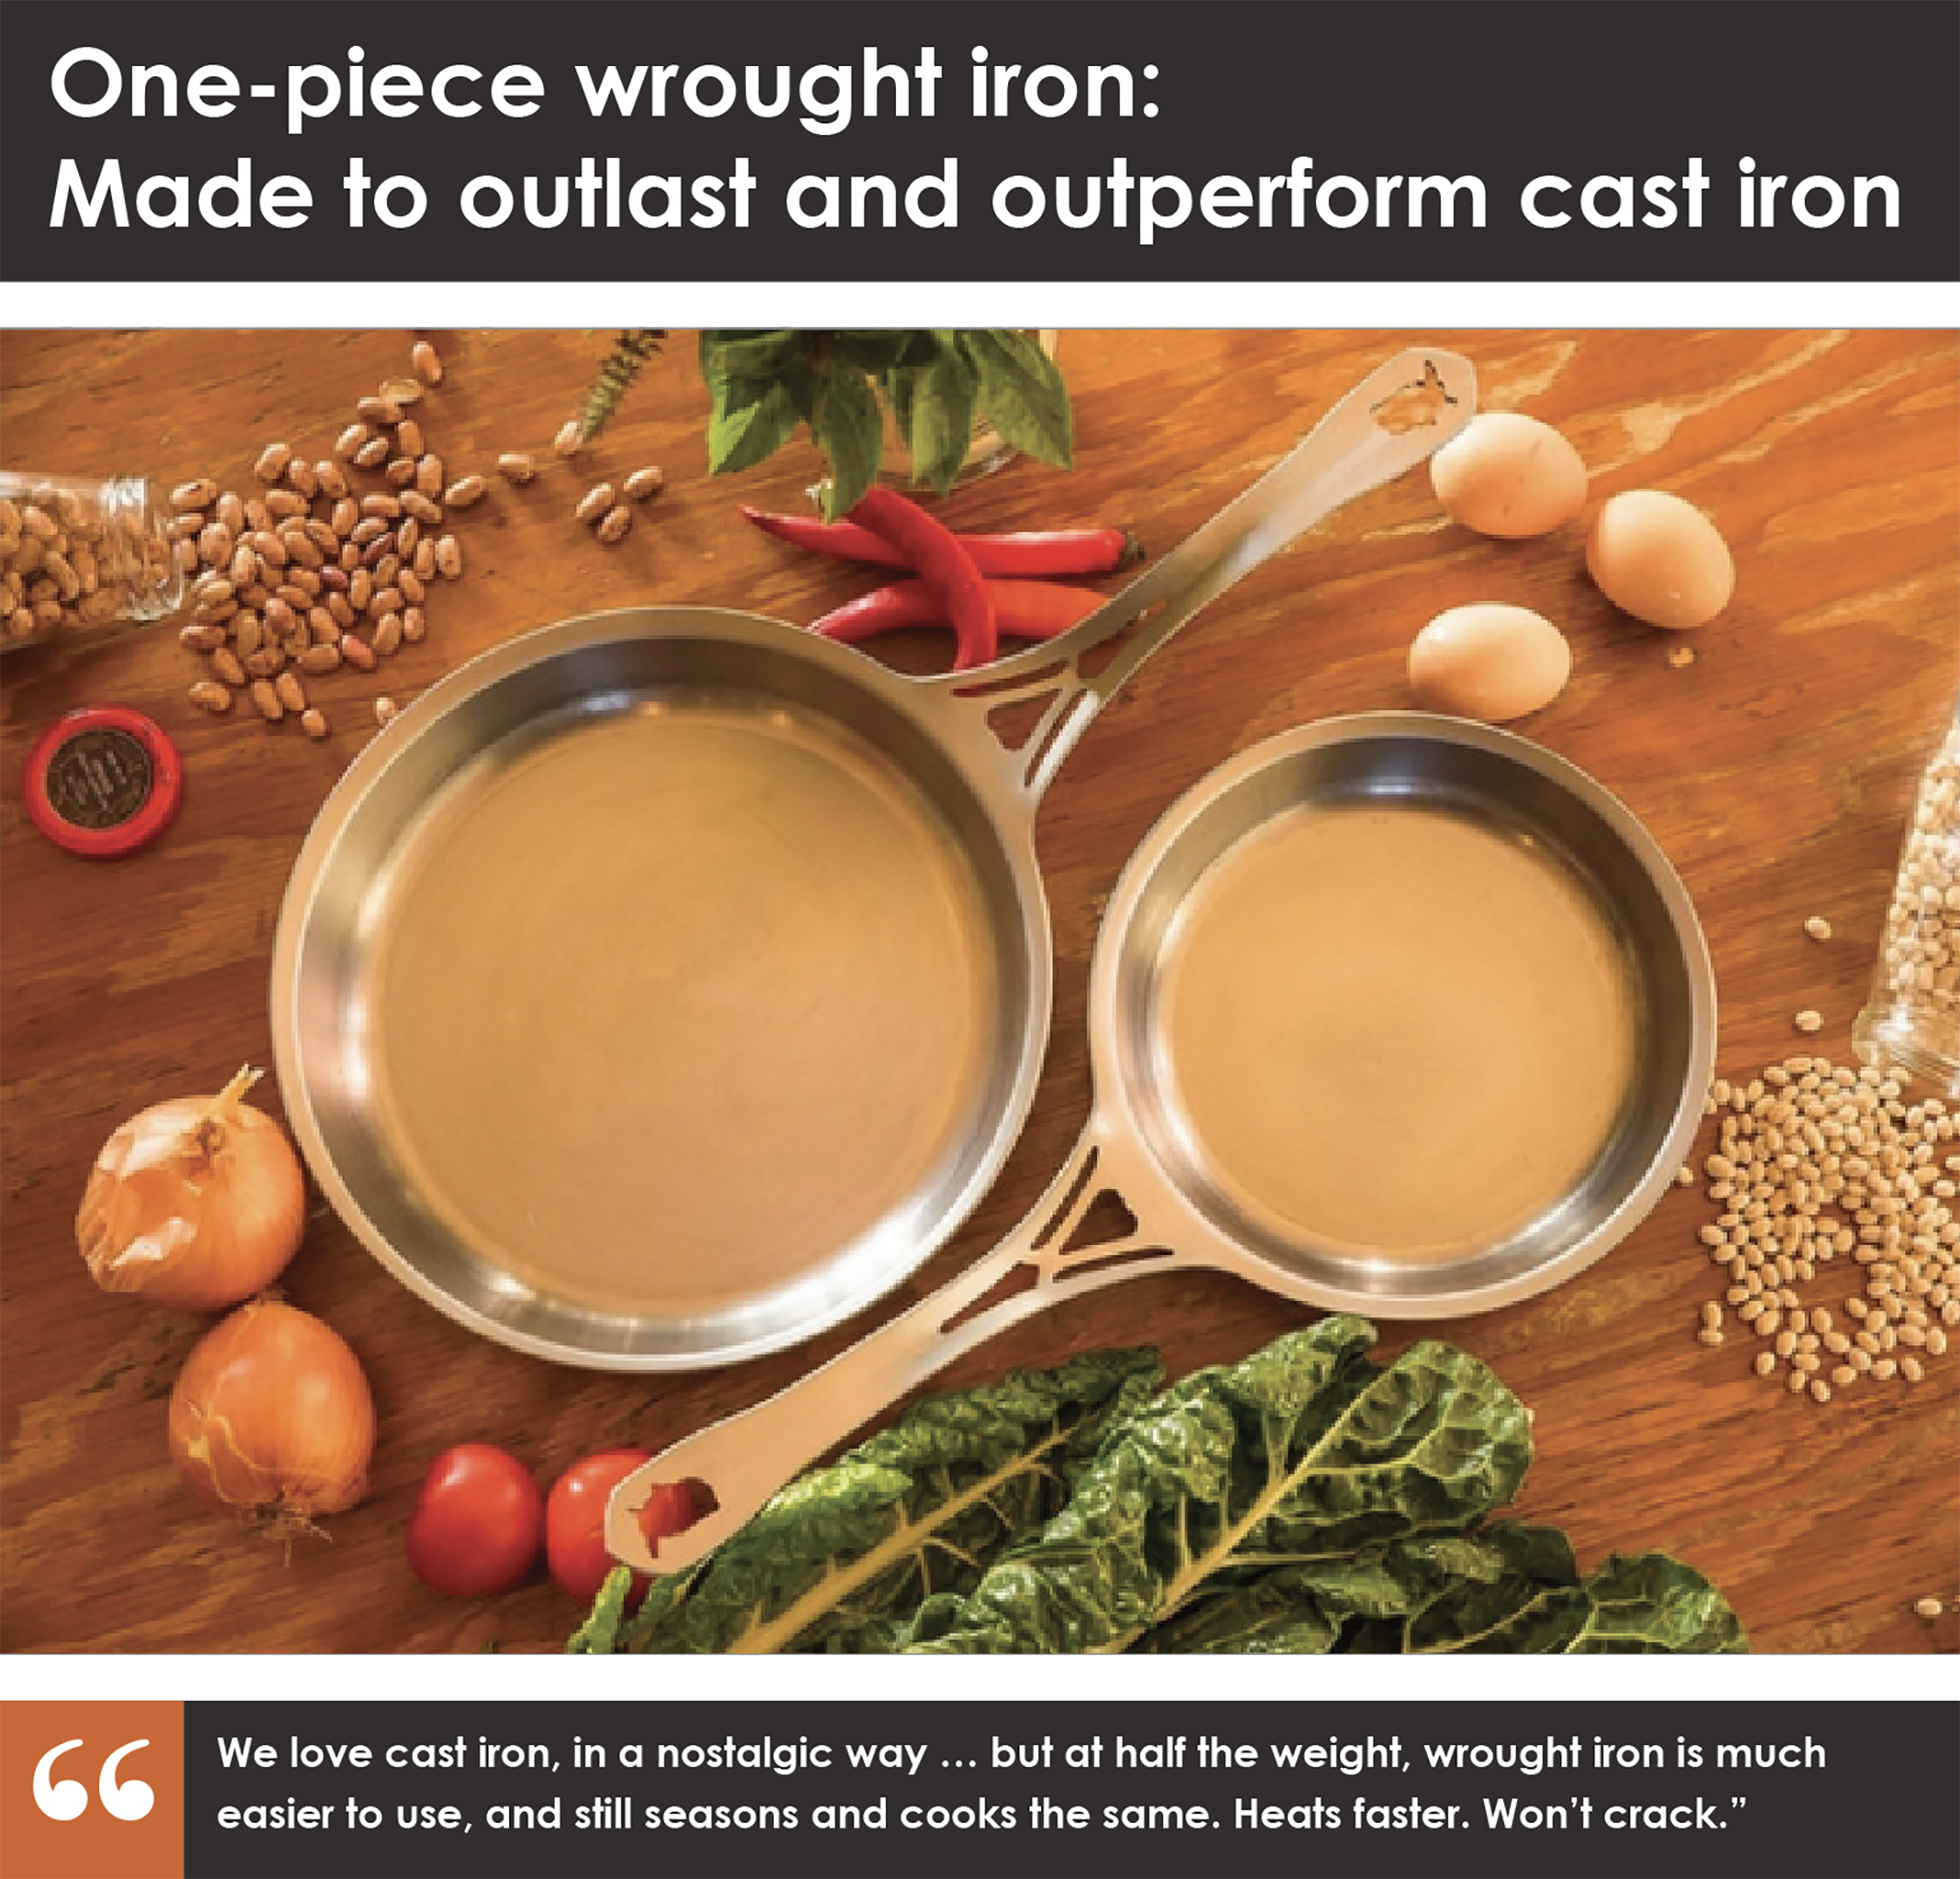 """7.5""""and 10"""" US-ION Skillets, 3mm USA wrought iron, made in Chicago in a patented single piece construction, per all the specifications in the campaign detail. Raw finish, wax coated, ready for seasoning.  Introductory Early Bird offer, never to be repeated!  Each pan is stamped 'First Edition', with month and year of manufacture, for heirloom collectibility. Limited stamped 'First Edition' only for Kickstarter backers in this campaign, never again!"""